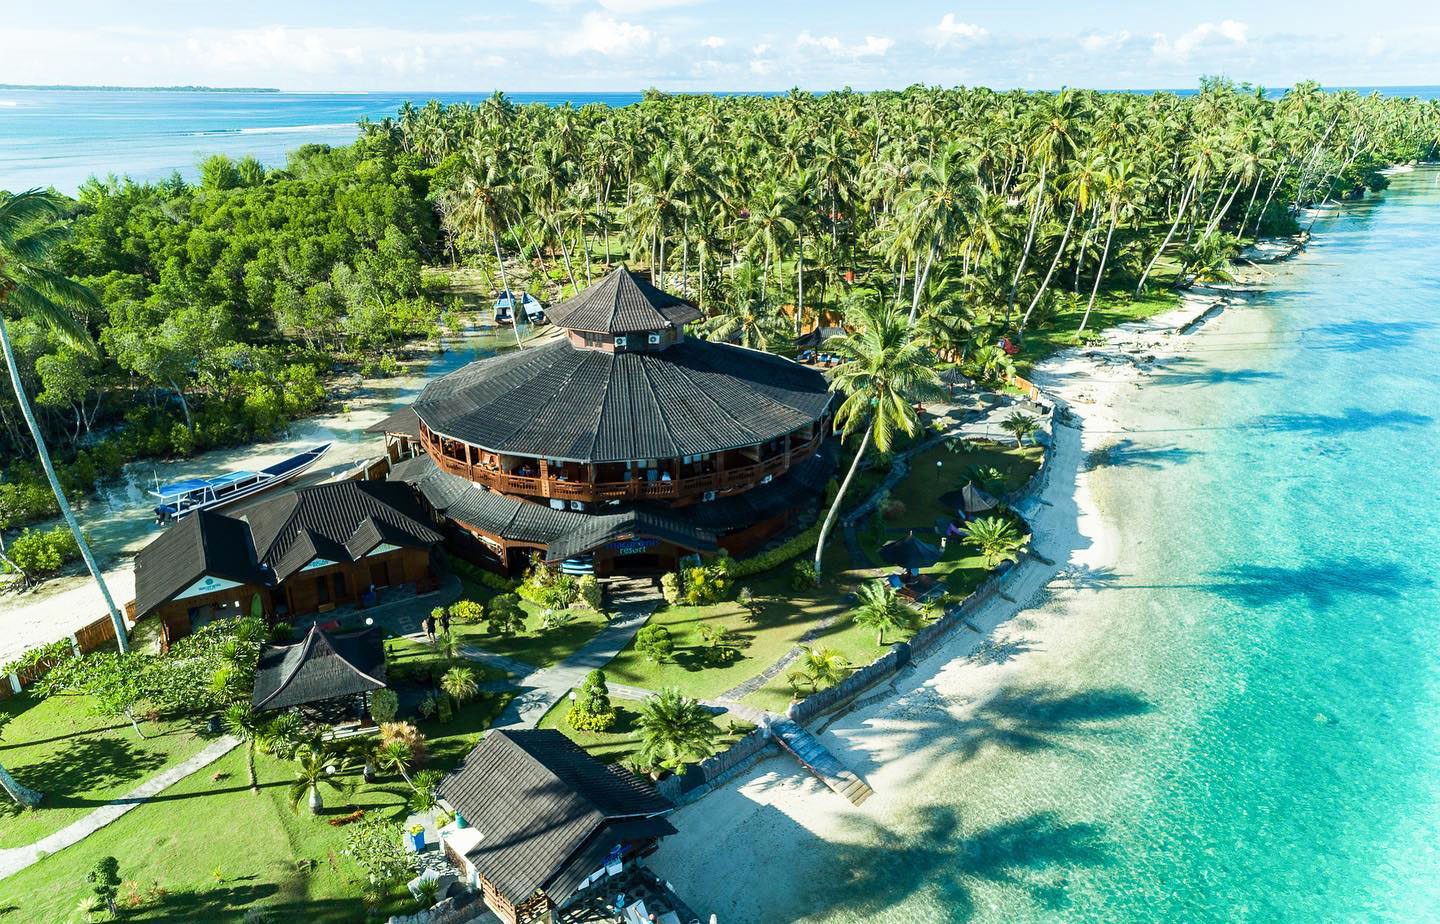 surf resort in the mentawai islands